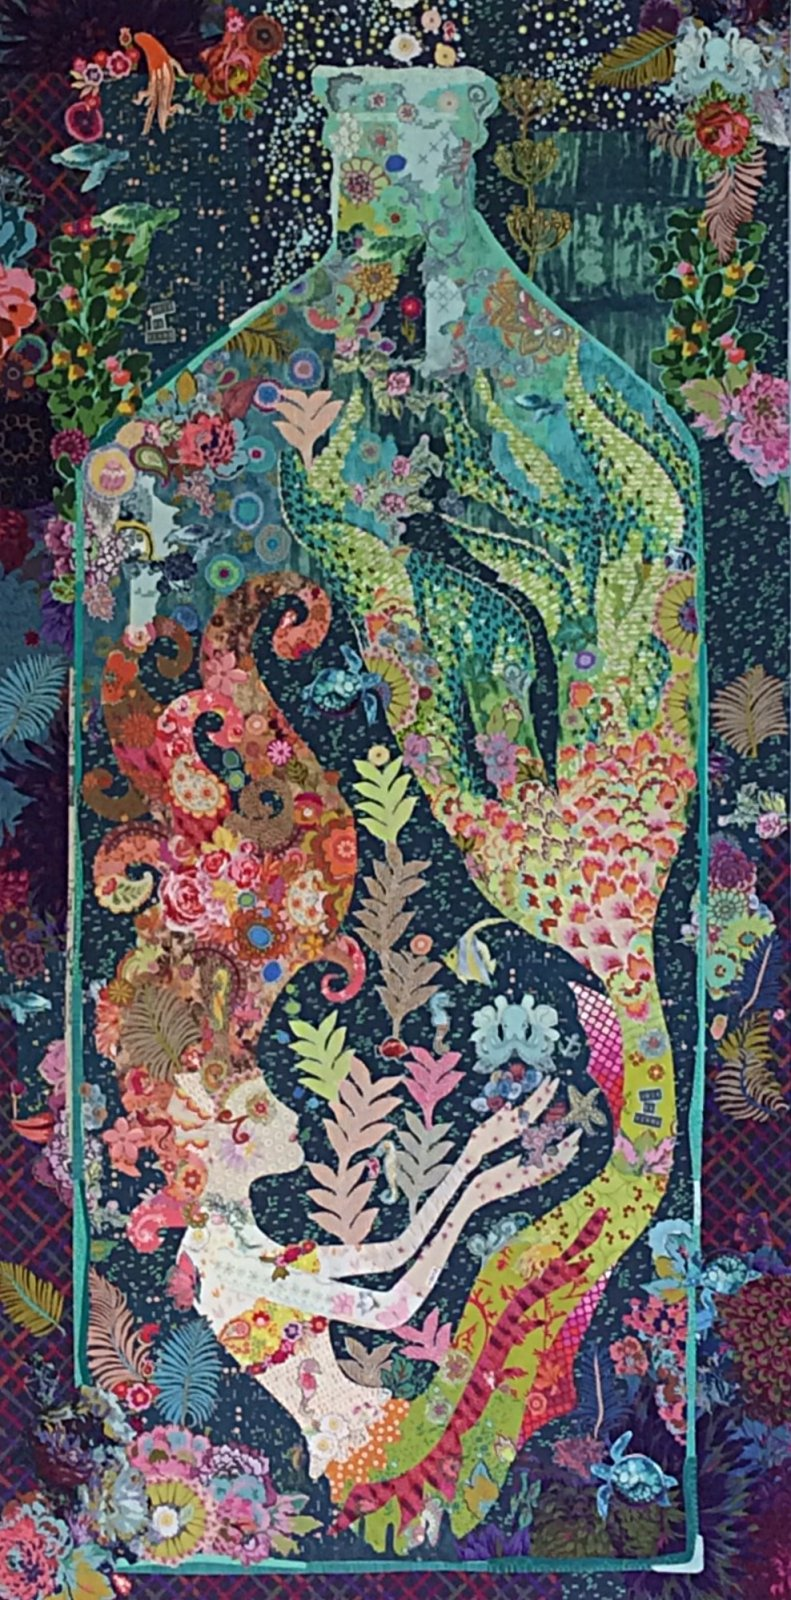 Sirene mermaid collage pattern by Laura Heine